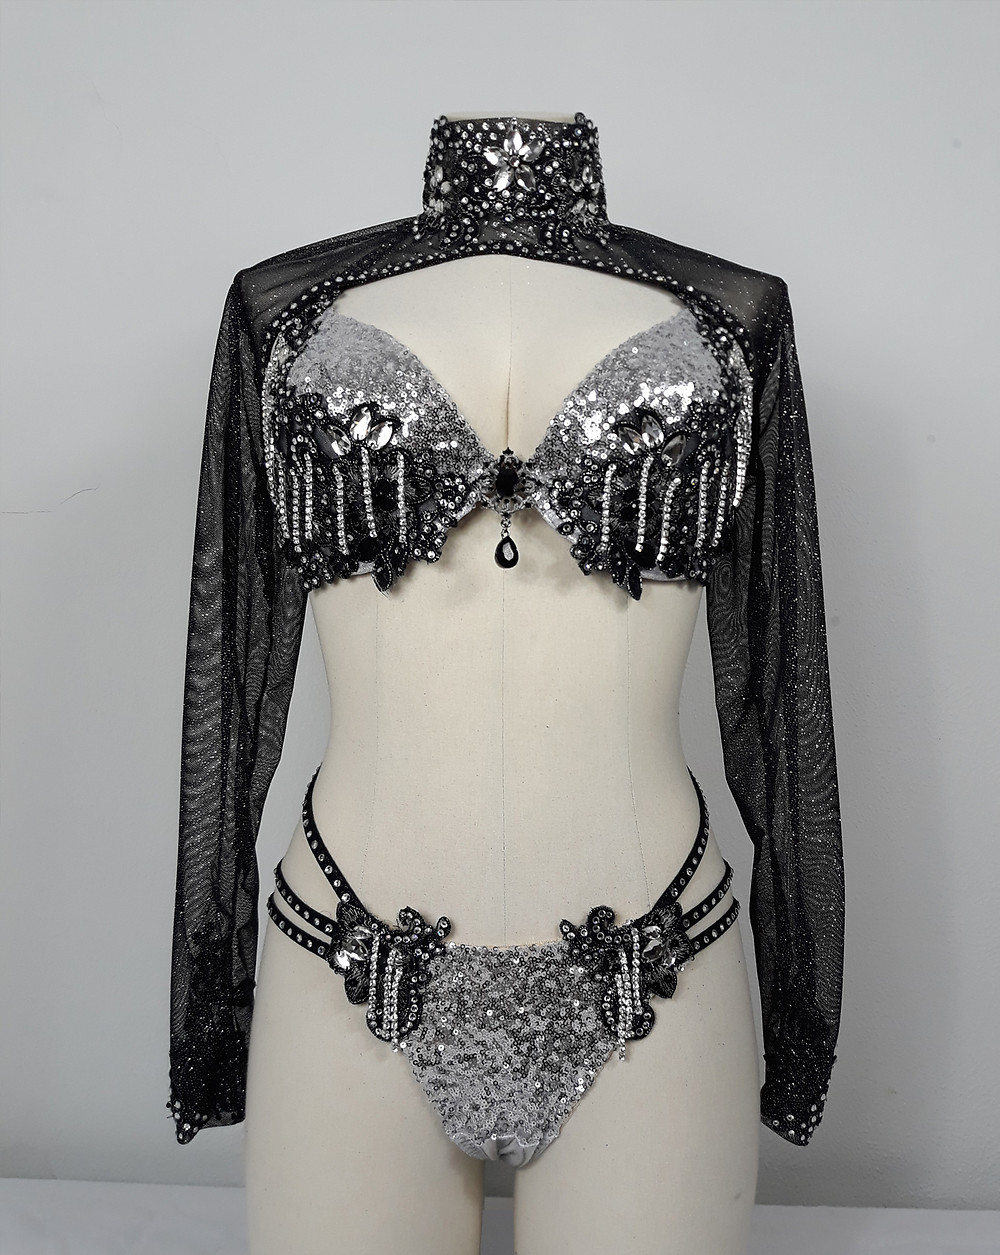 Final WBFF competition costume